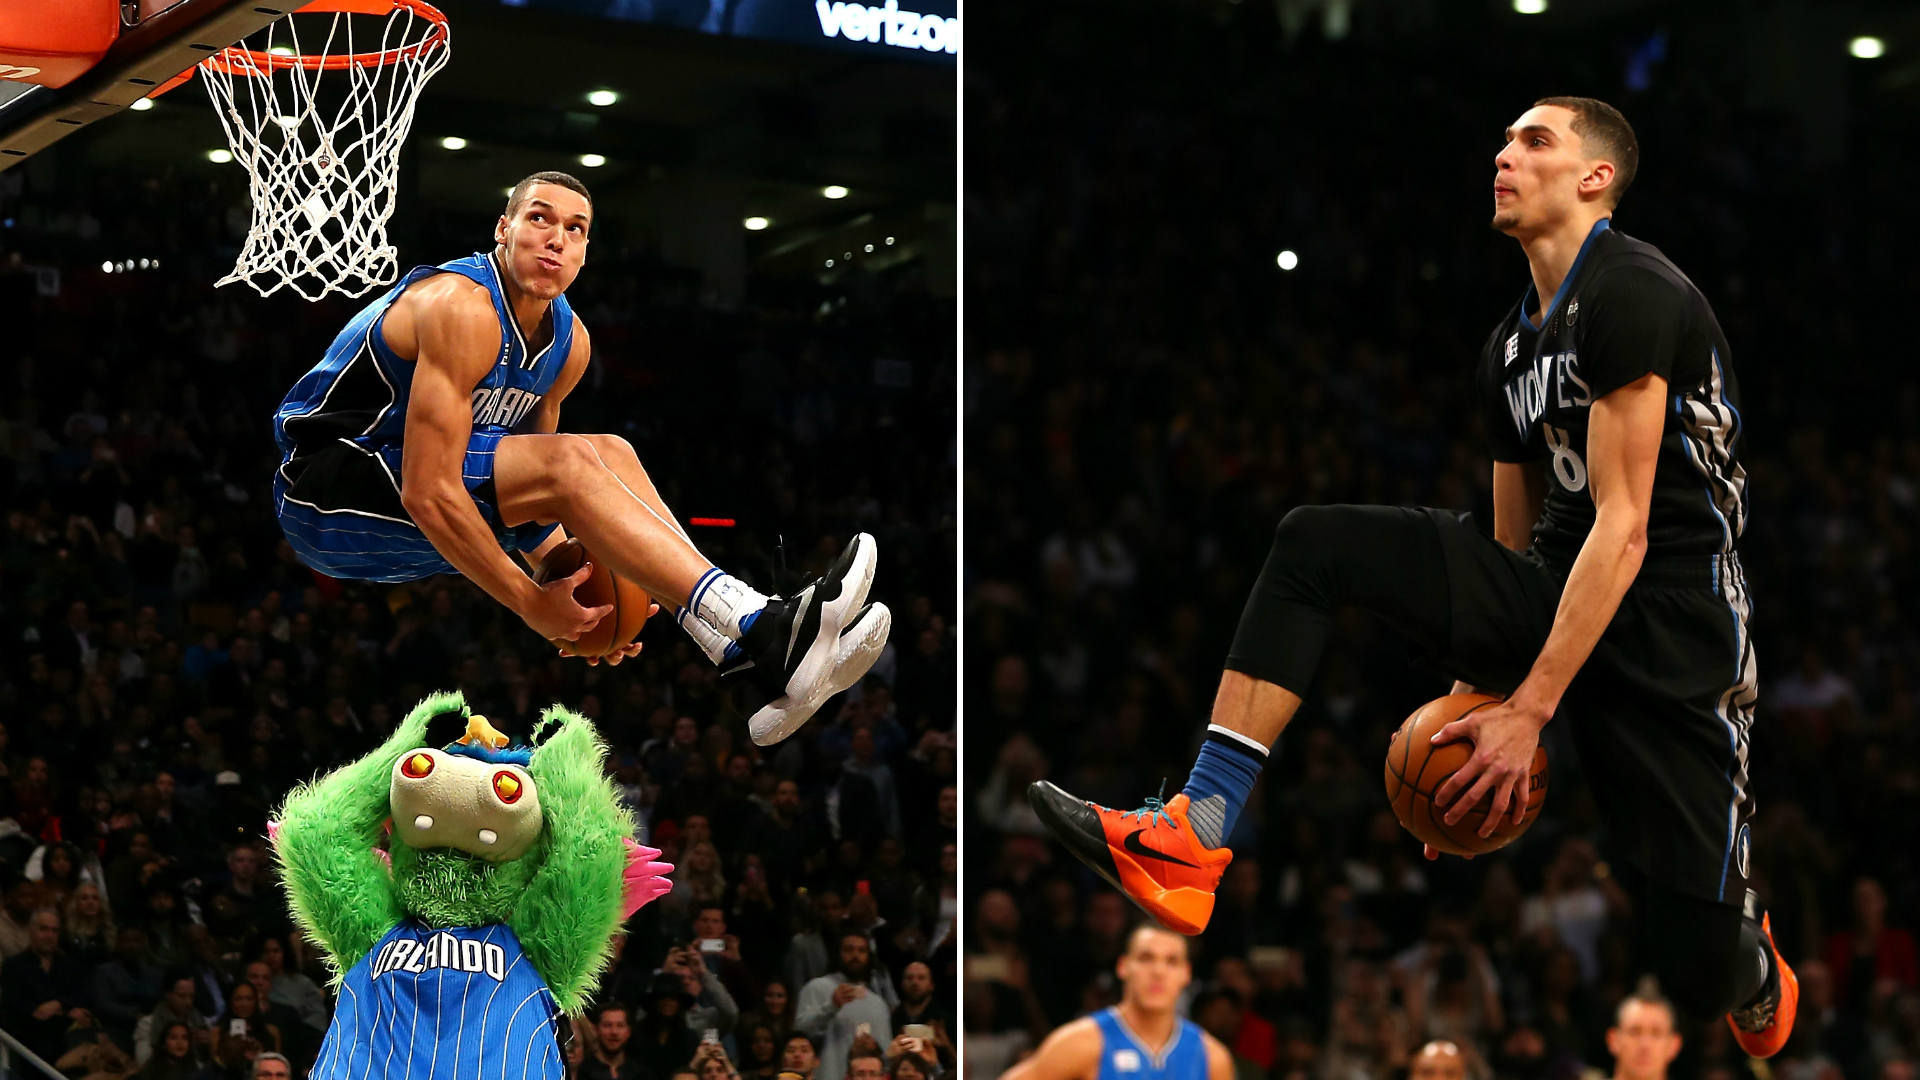 2016 nba all star weekend comm455history of journalism aaron gordon and zach lavine break out all their best dunks in the 2016 nba dunk voltagebd Image collections